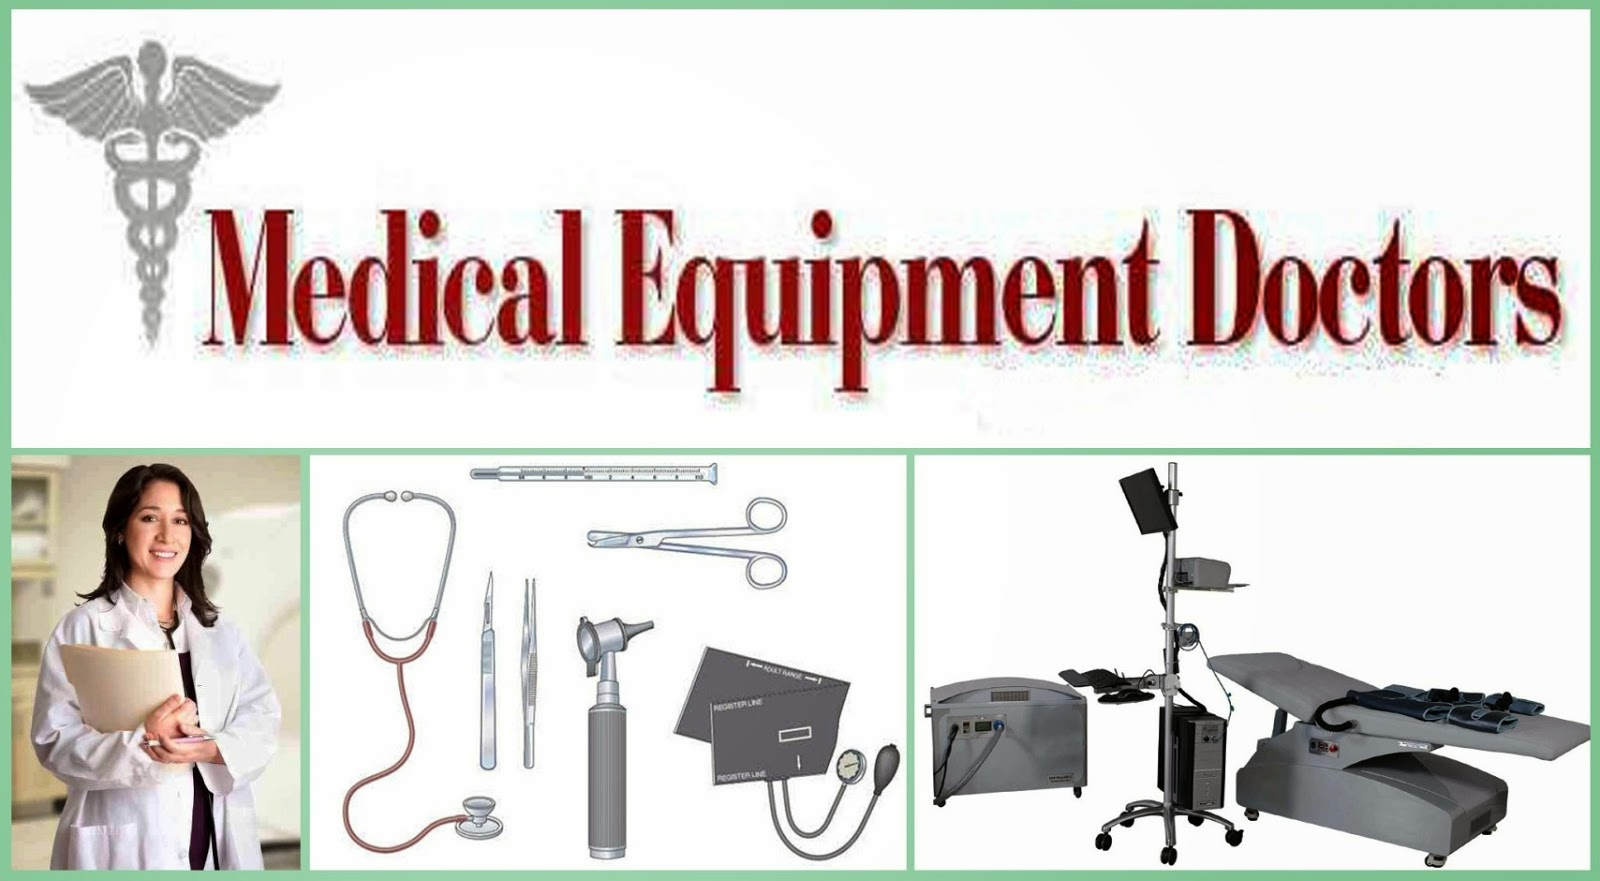 Medical Equipment Business Plan